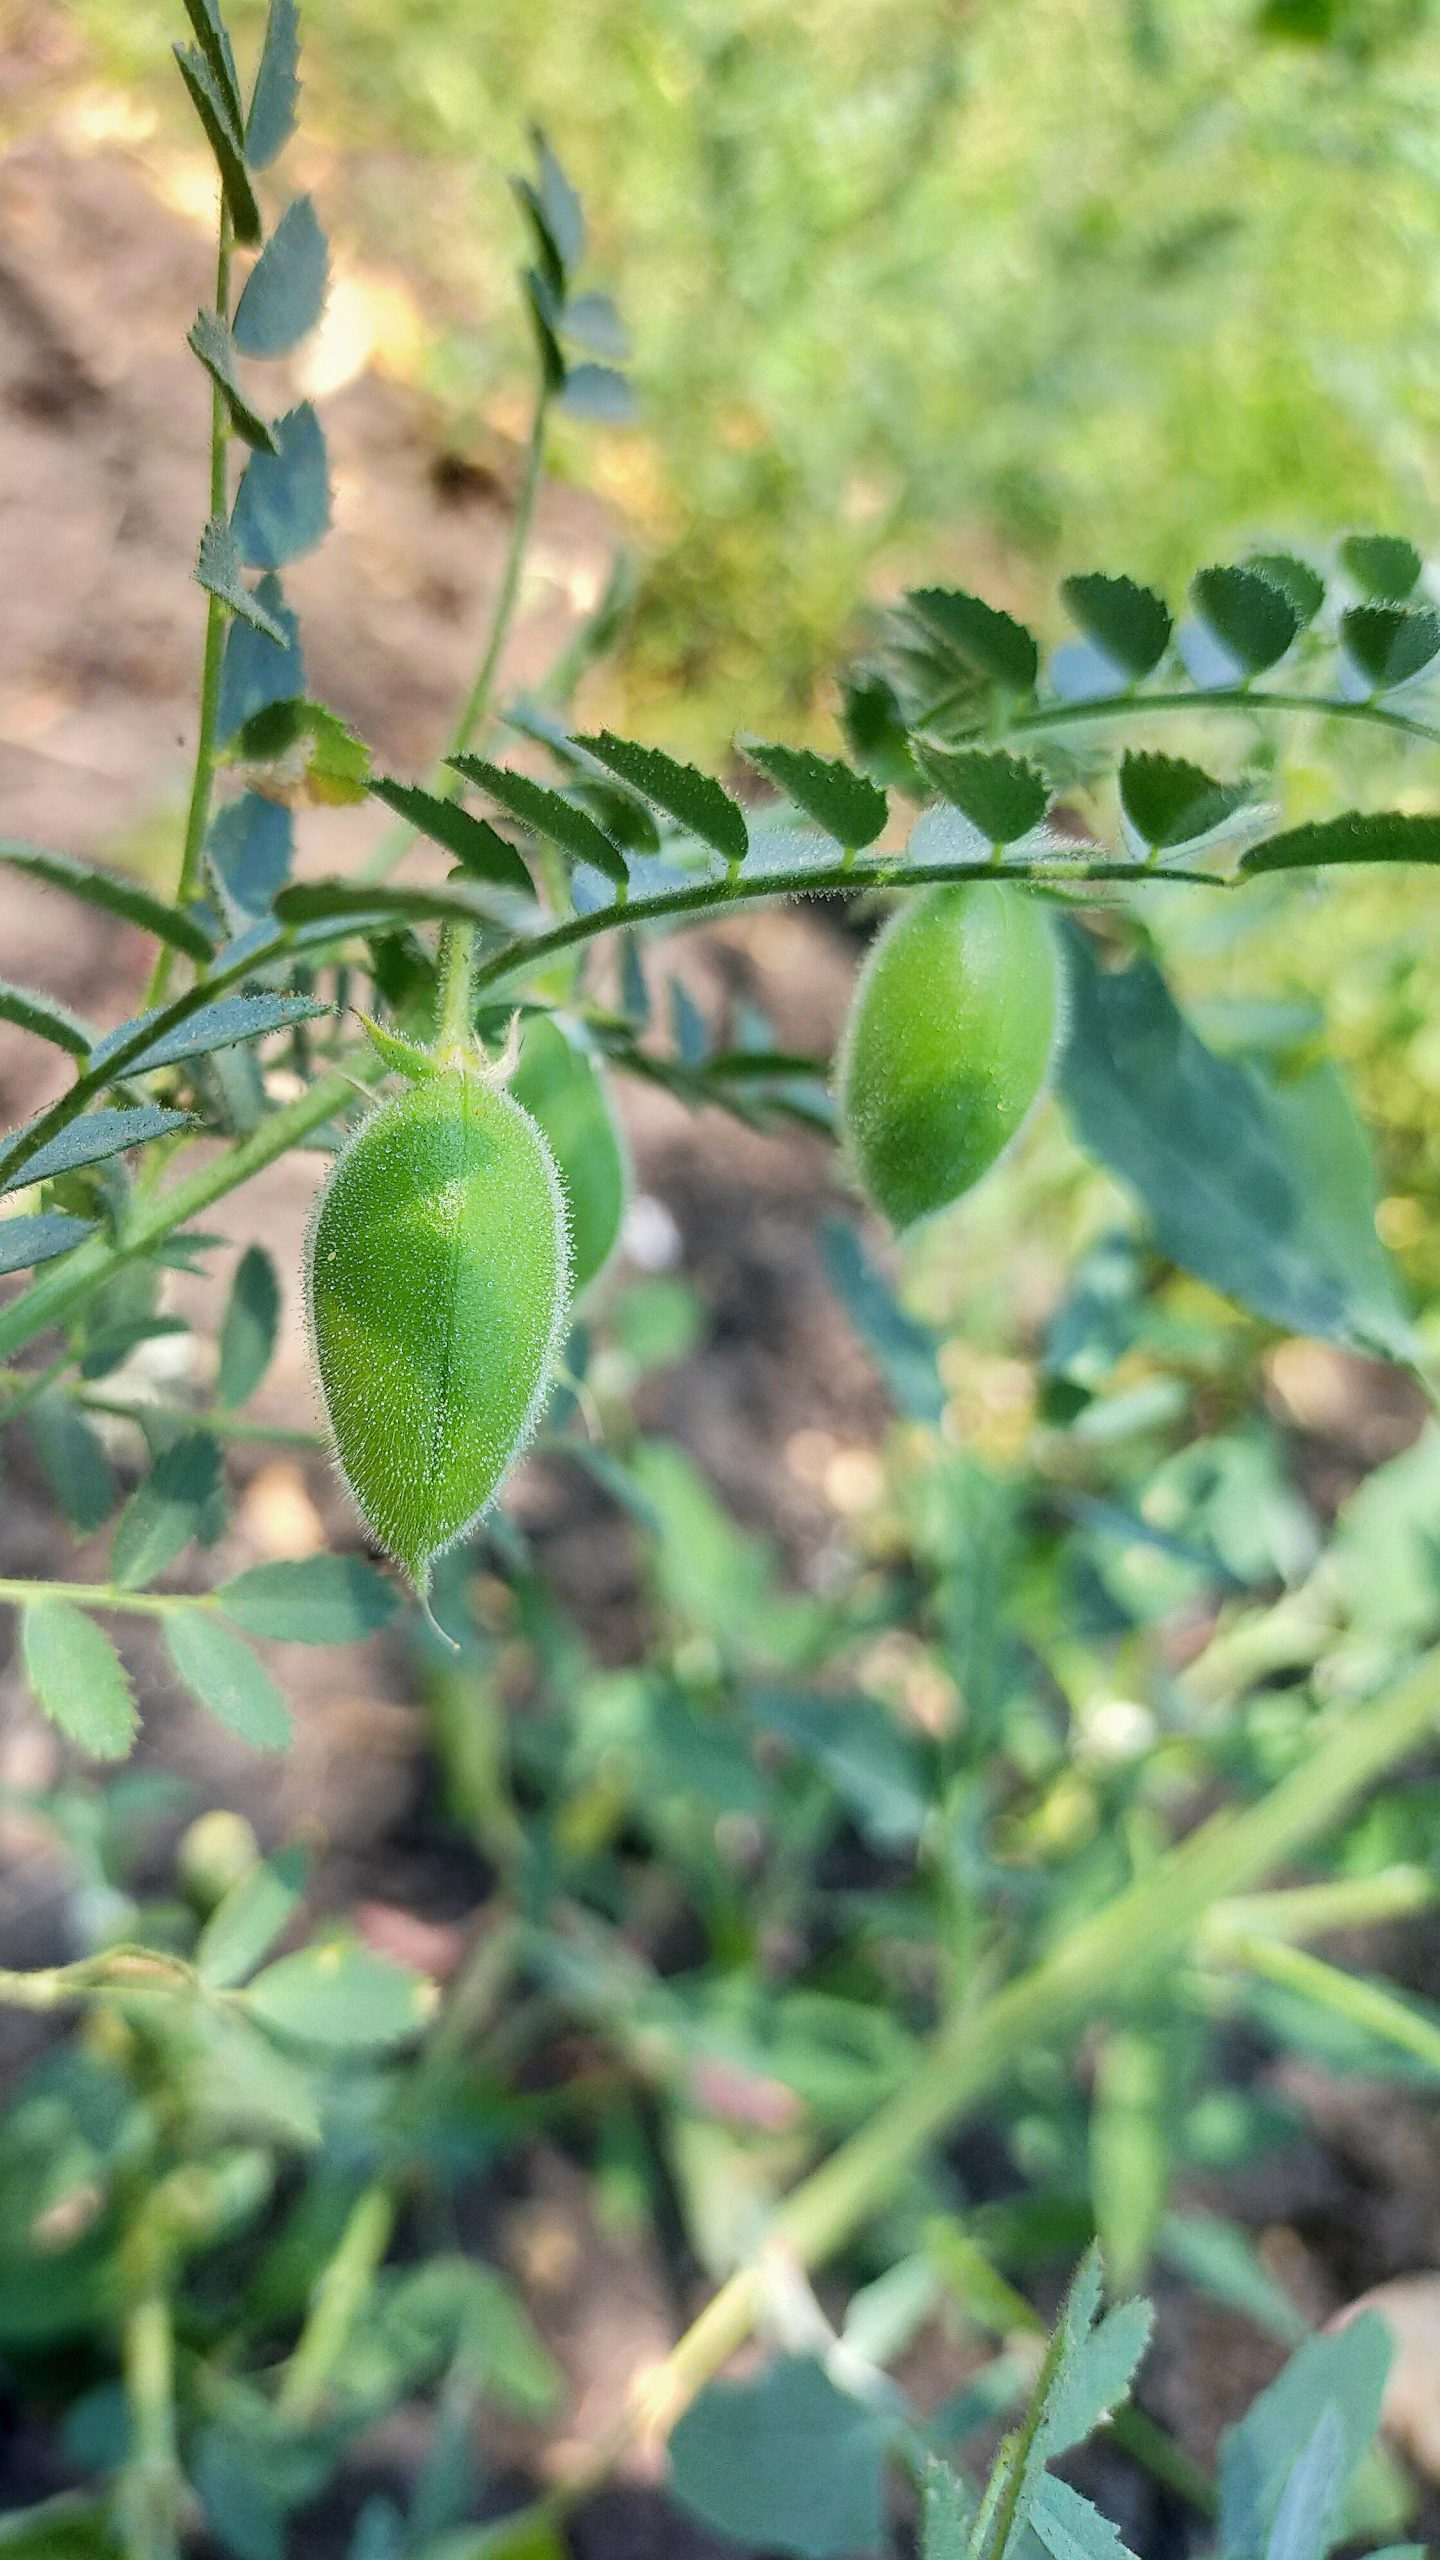 A chickpea plant